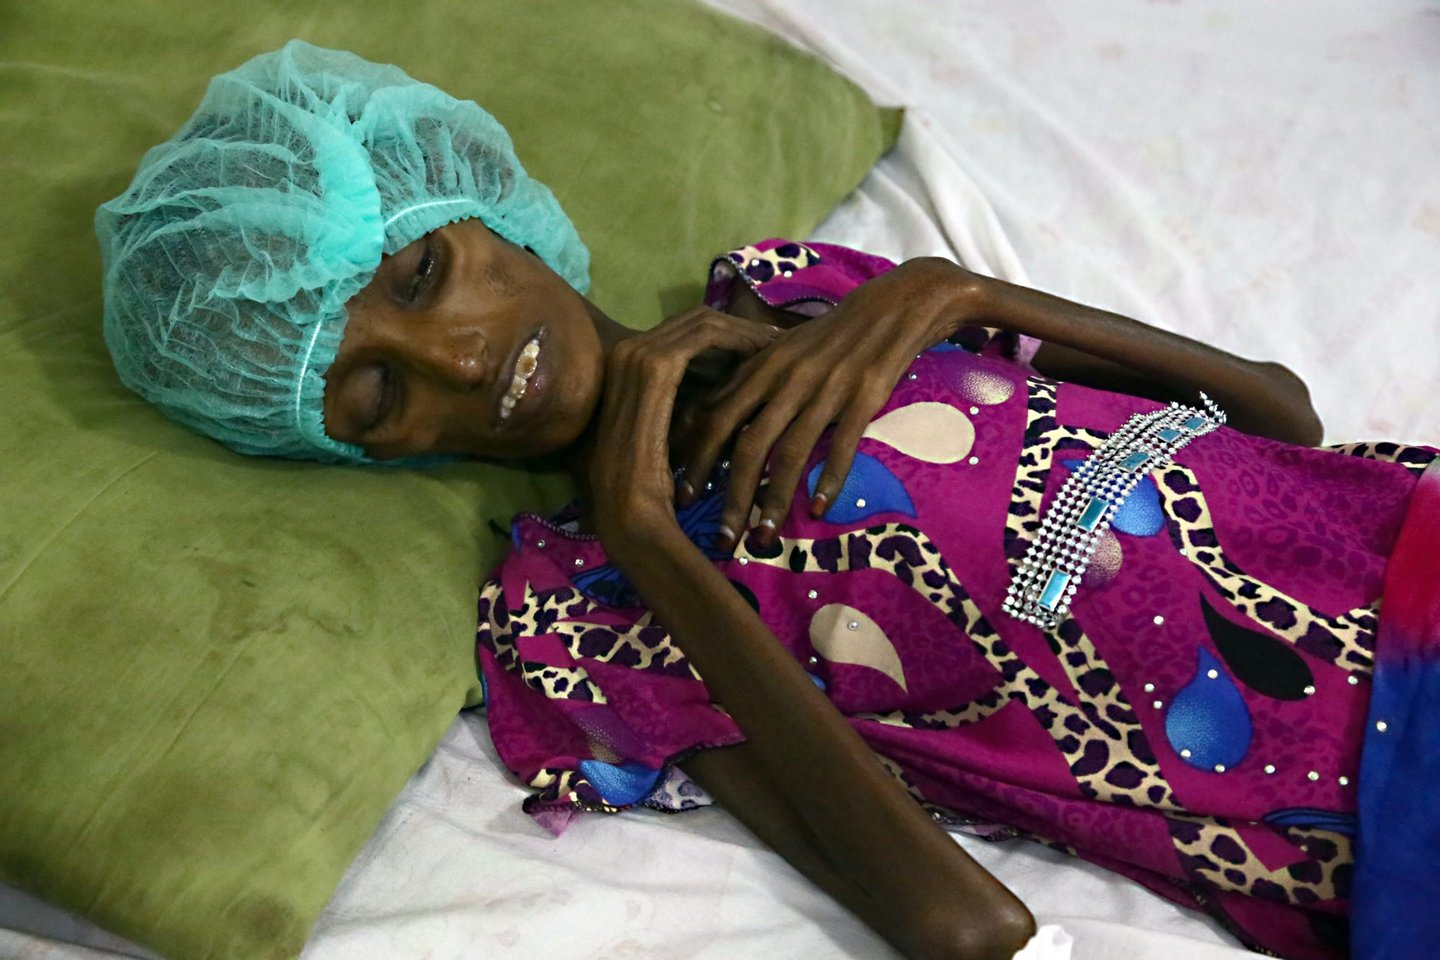 Saida Ahmad Baghili, an 18-year-old Yemeni woman from an impoverished coastal village on the outskirts of the rebel-held Yemeni port city of Hodeida, where malnutrition has hit the population hard, lies in a bed at the al-Thawra hospital in Hodeidah where she is receiving treatment for severe malnutrition on October 25, 2016. The UN's children agency UNICEF estimates that three million people are in need of immediate food supplies in Yemen, while 1.5 million children suffer from malnutrition. / AFP / STRINGER (Photo credit should read STRINGER/AFP/Getty Images)